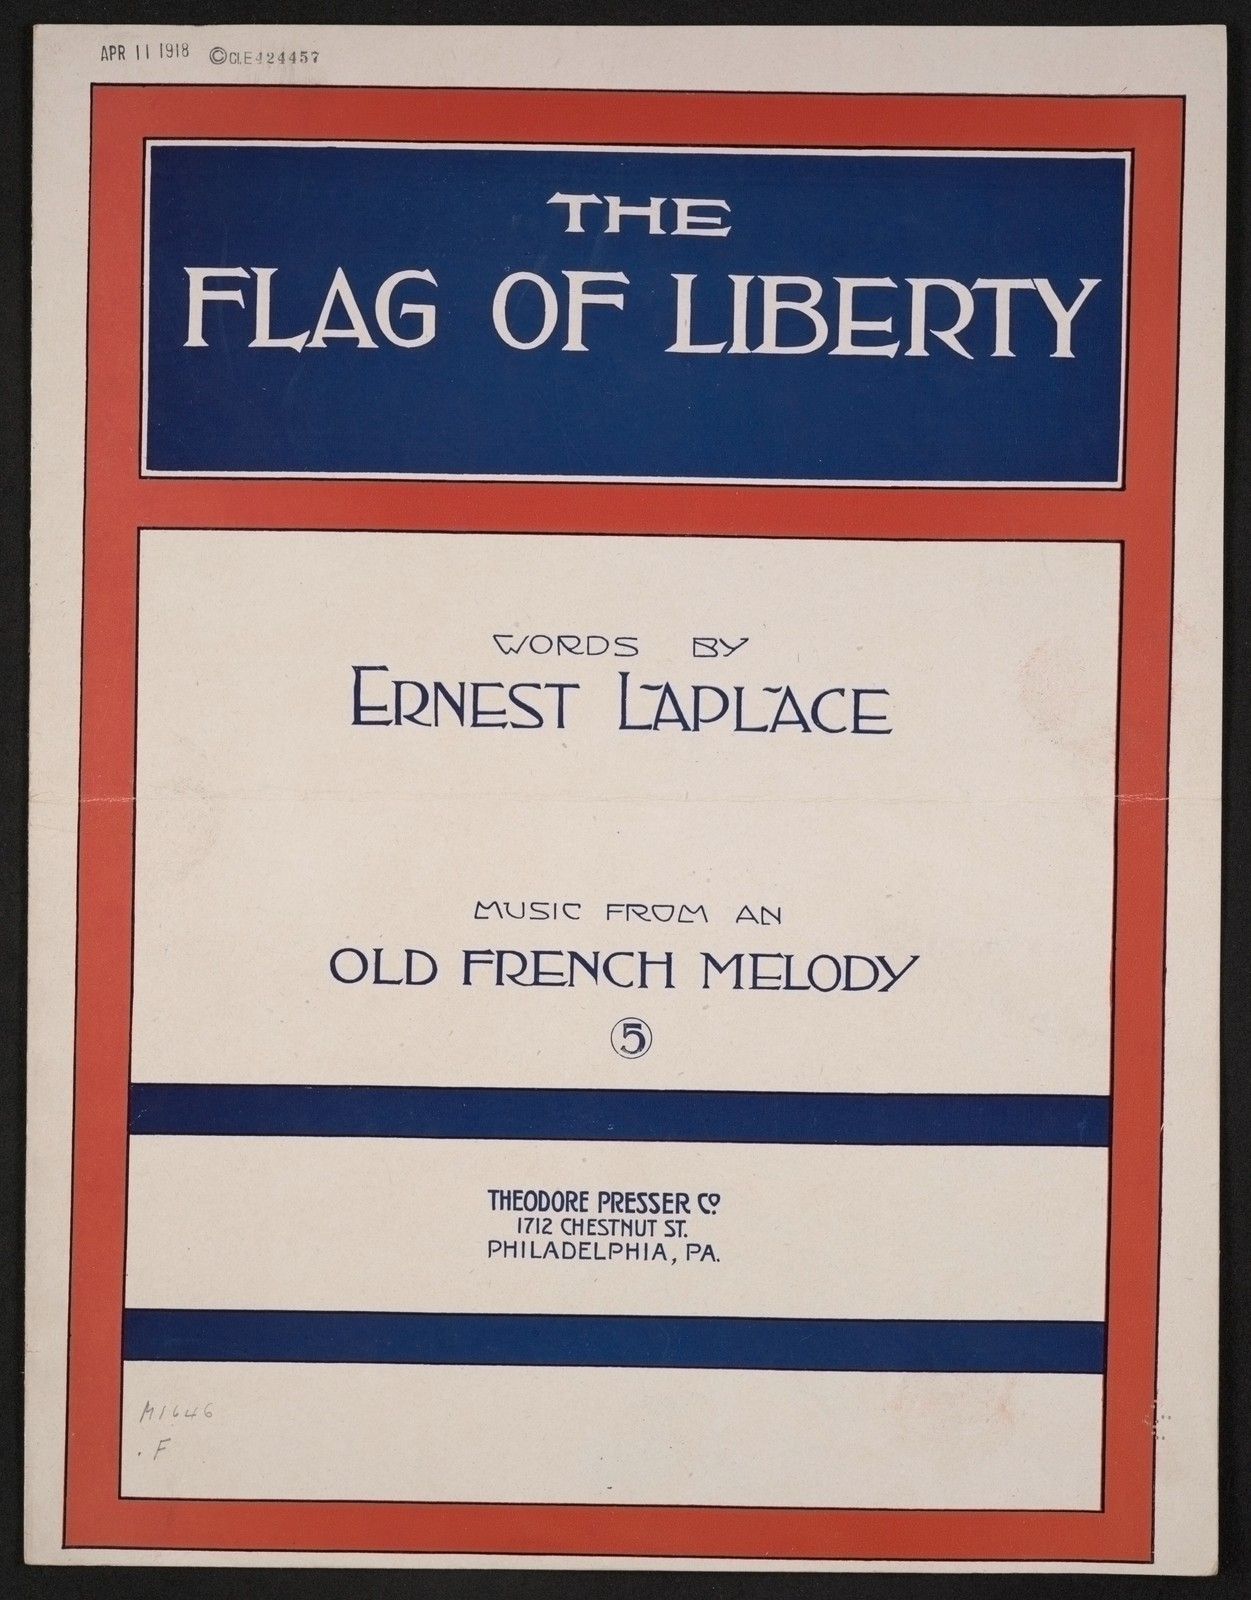 The  flag of liberty